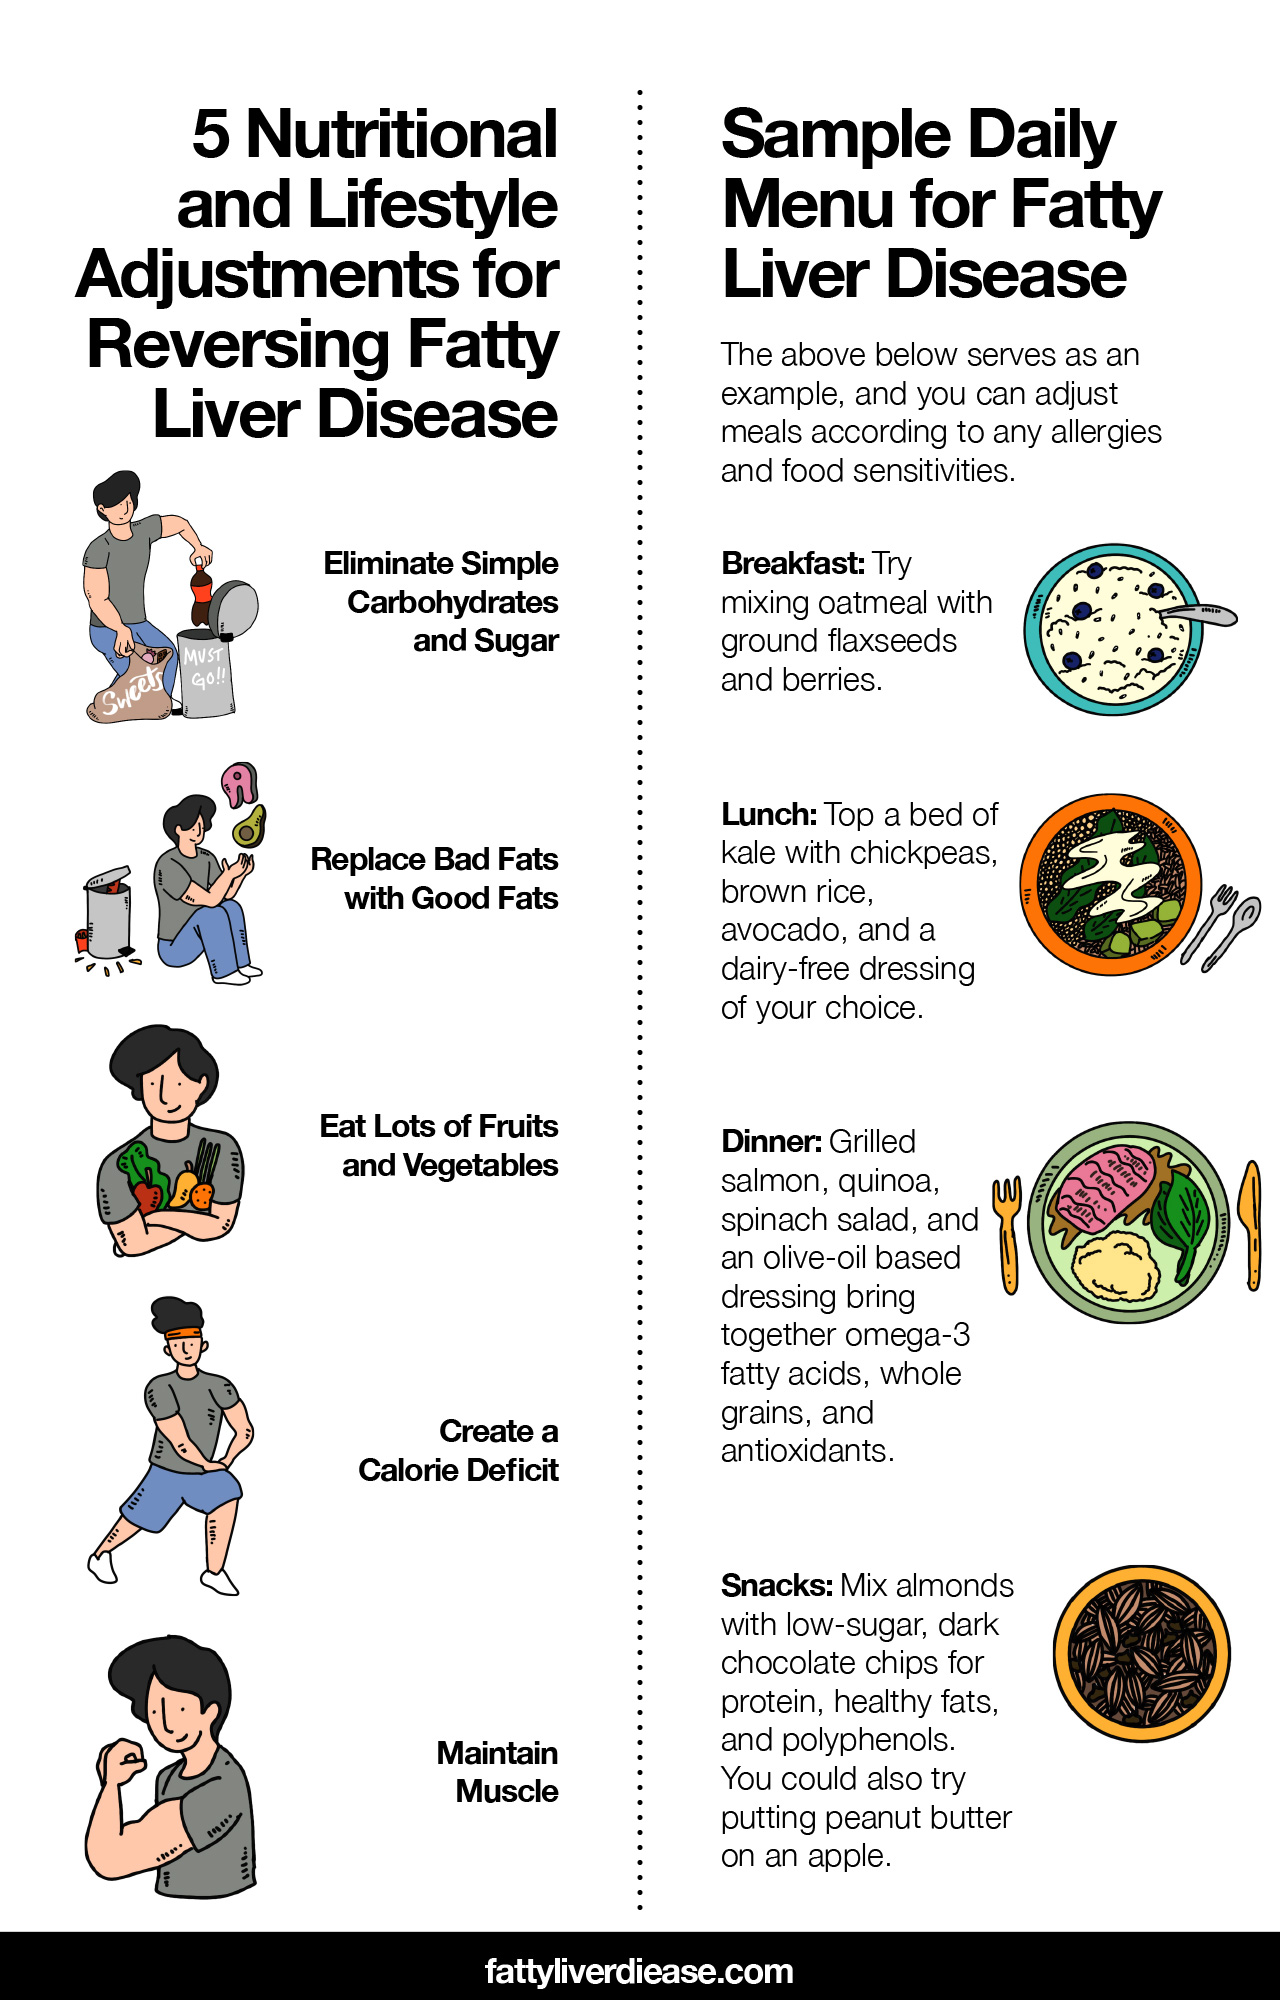 atty liver disease diet plan